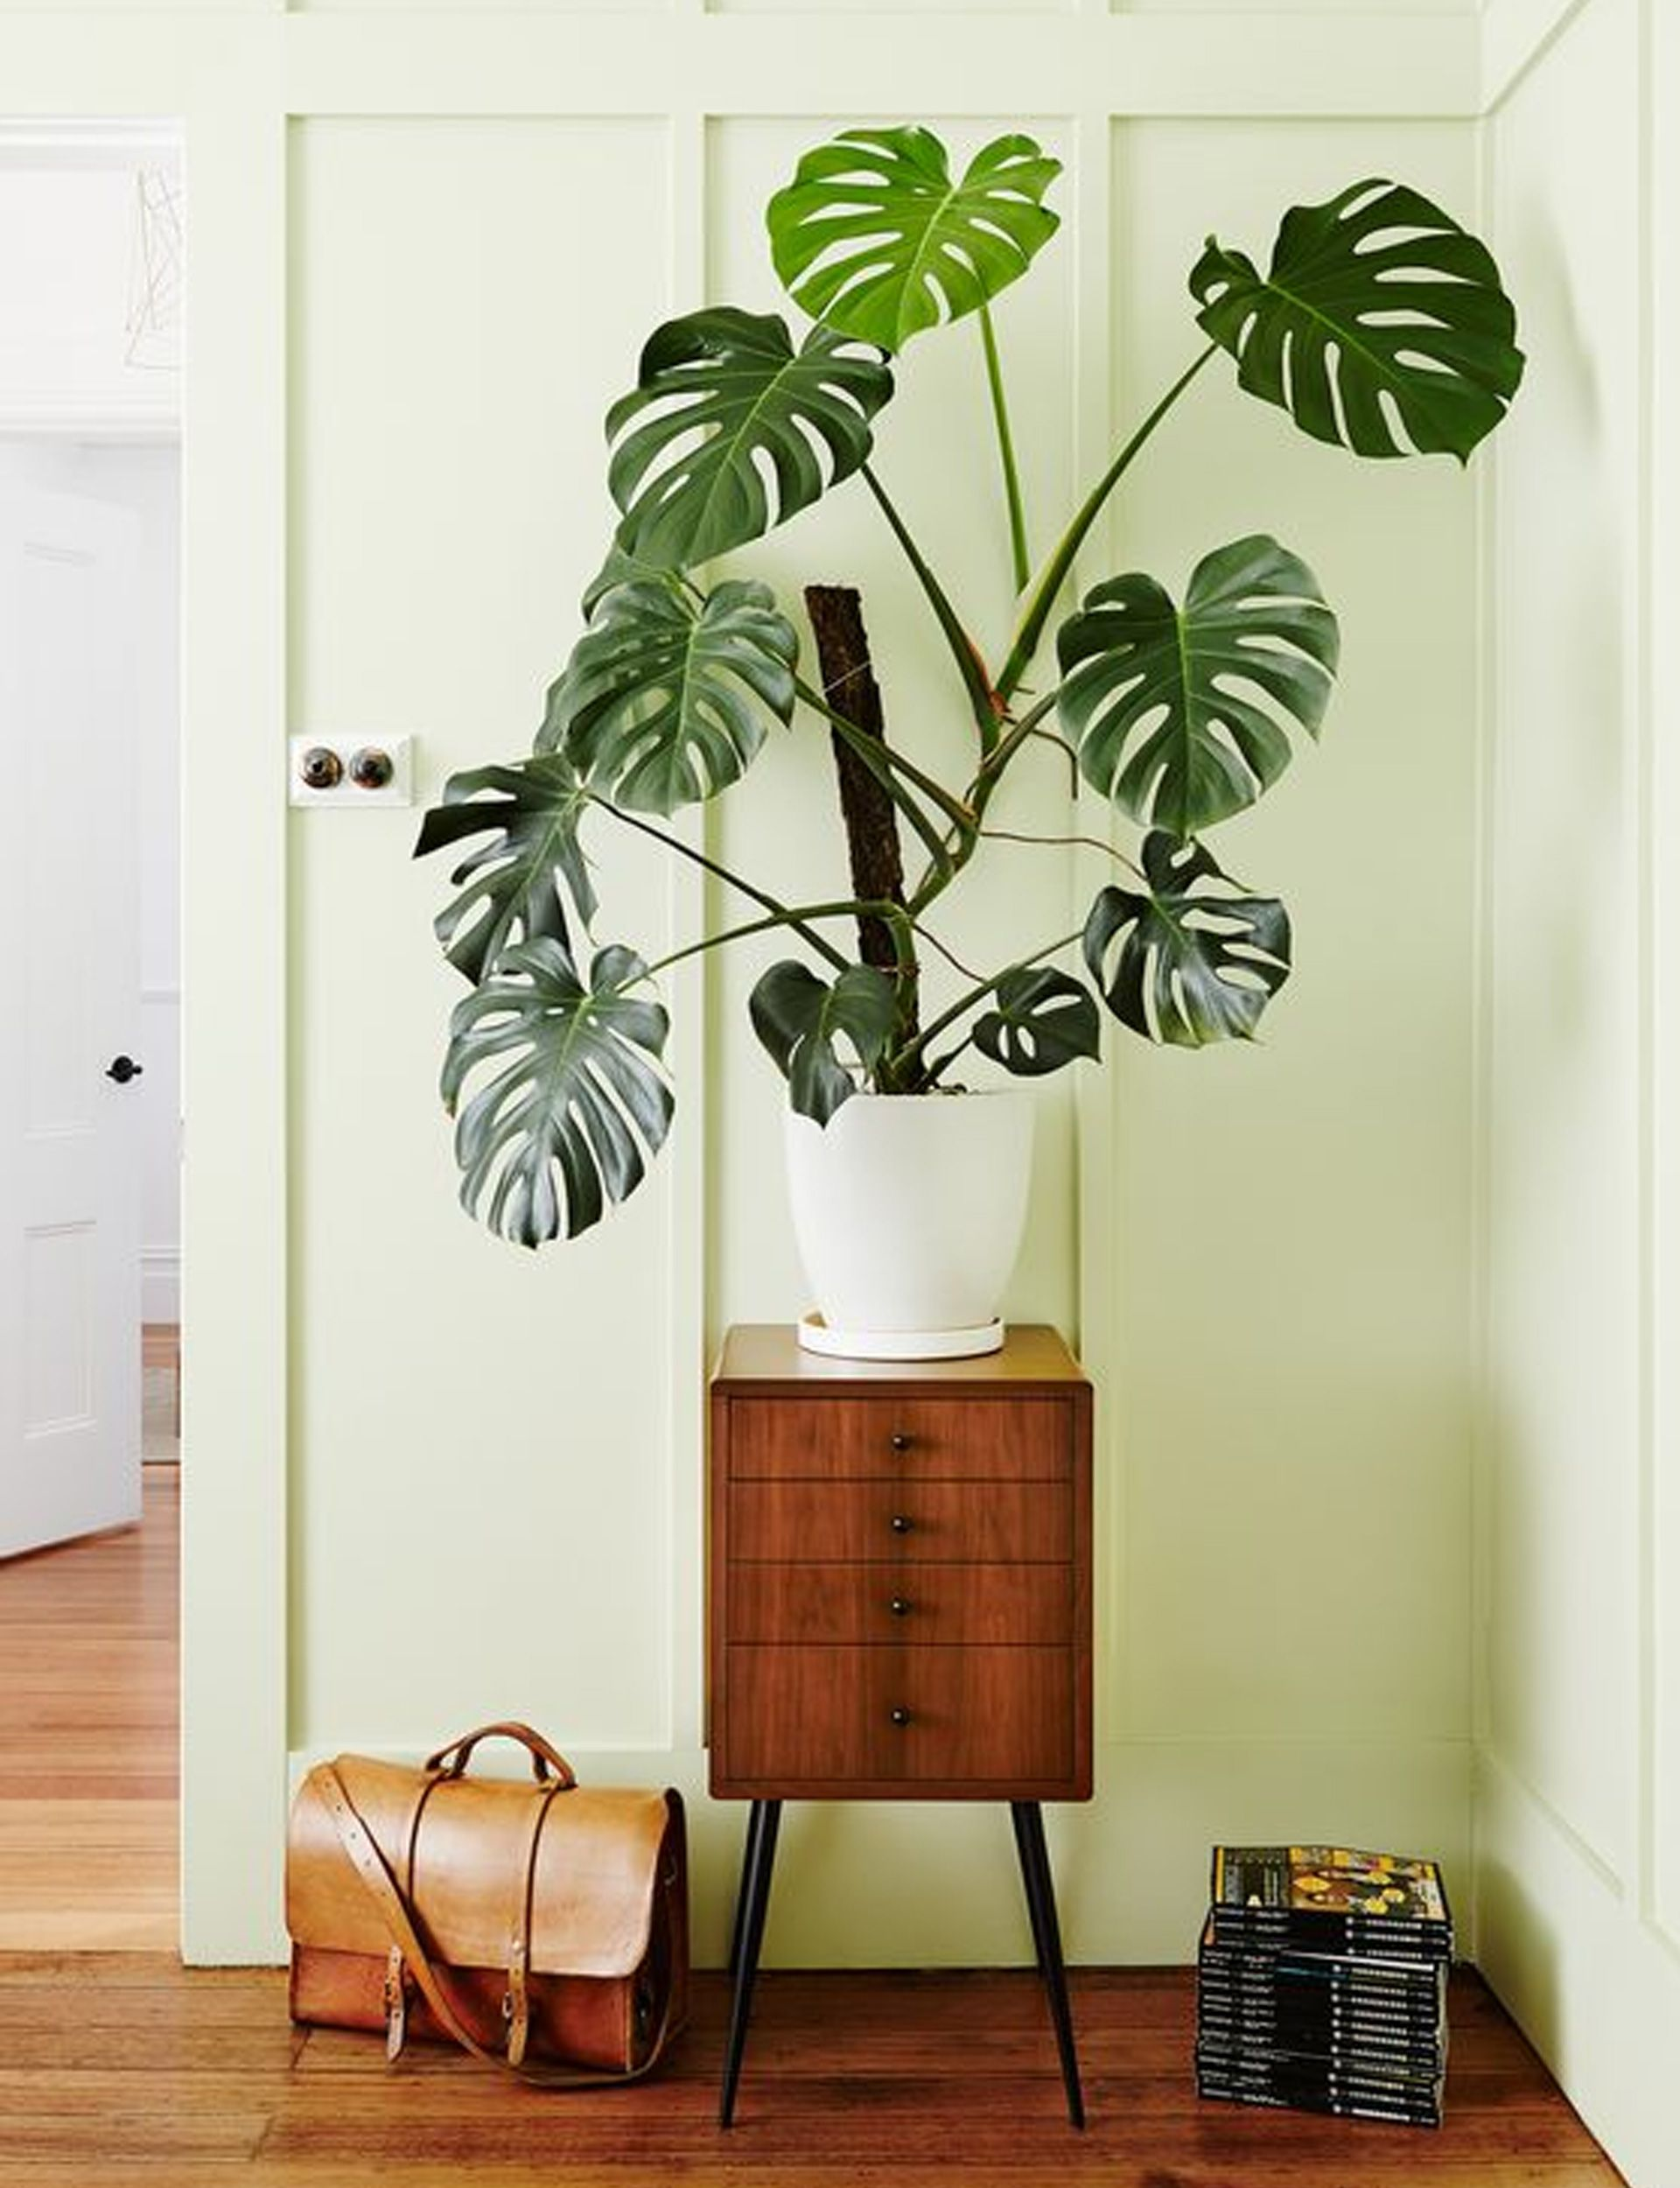 Why indoor trees are the house plant trend to embrace in 2019 -   10 plants Indoor leaves ideas